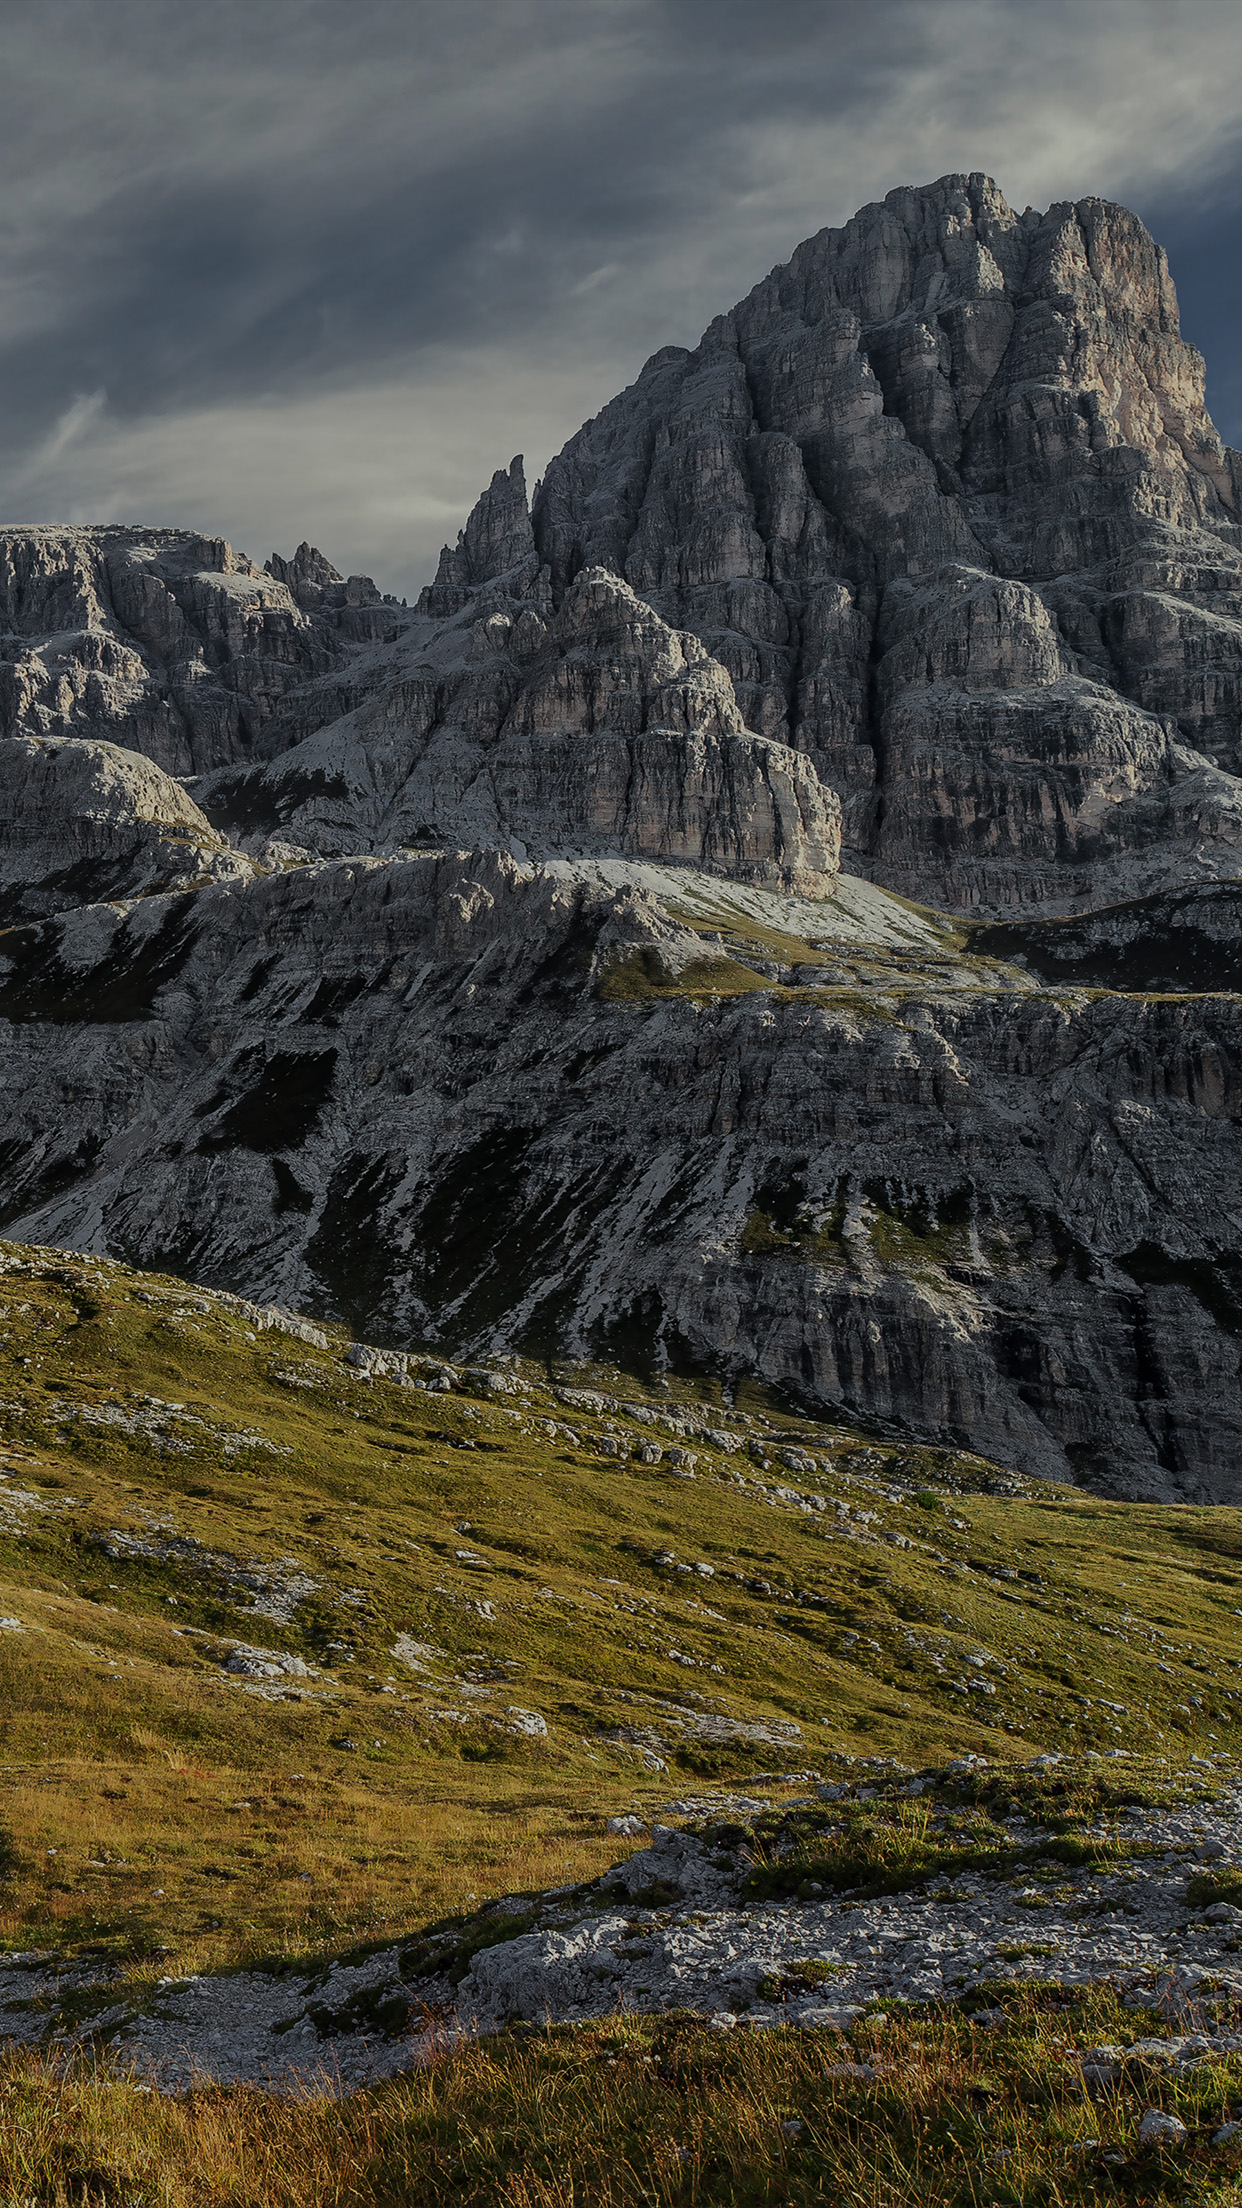 Fall Mountains Hd Desktop Wallpaper For Iphone X Iphonexpapers